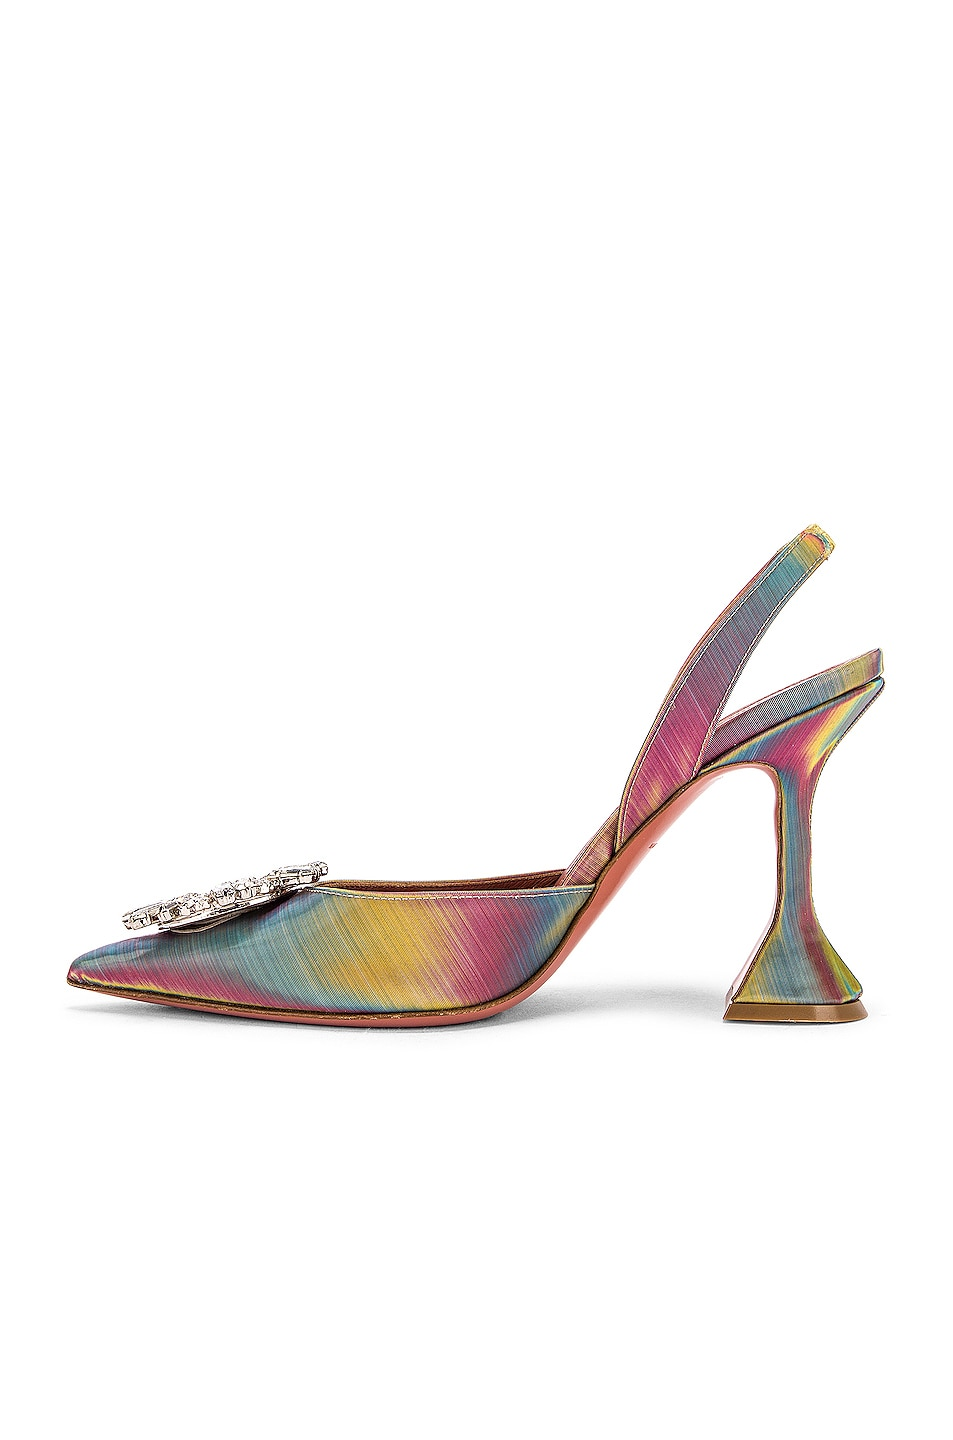 Image 5 of AMINA MUADDI Begum Sling Heel in Shadow Leather Multicolor